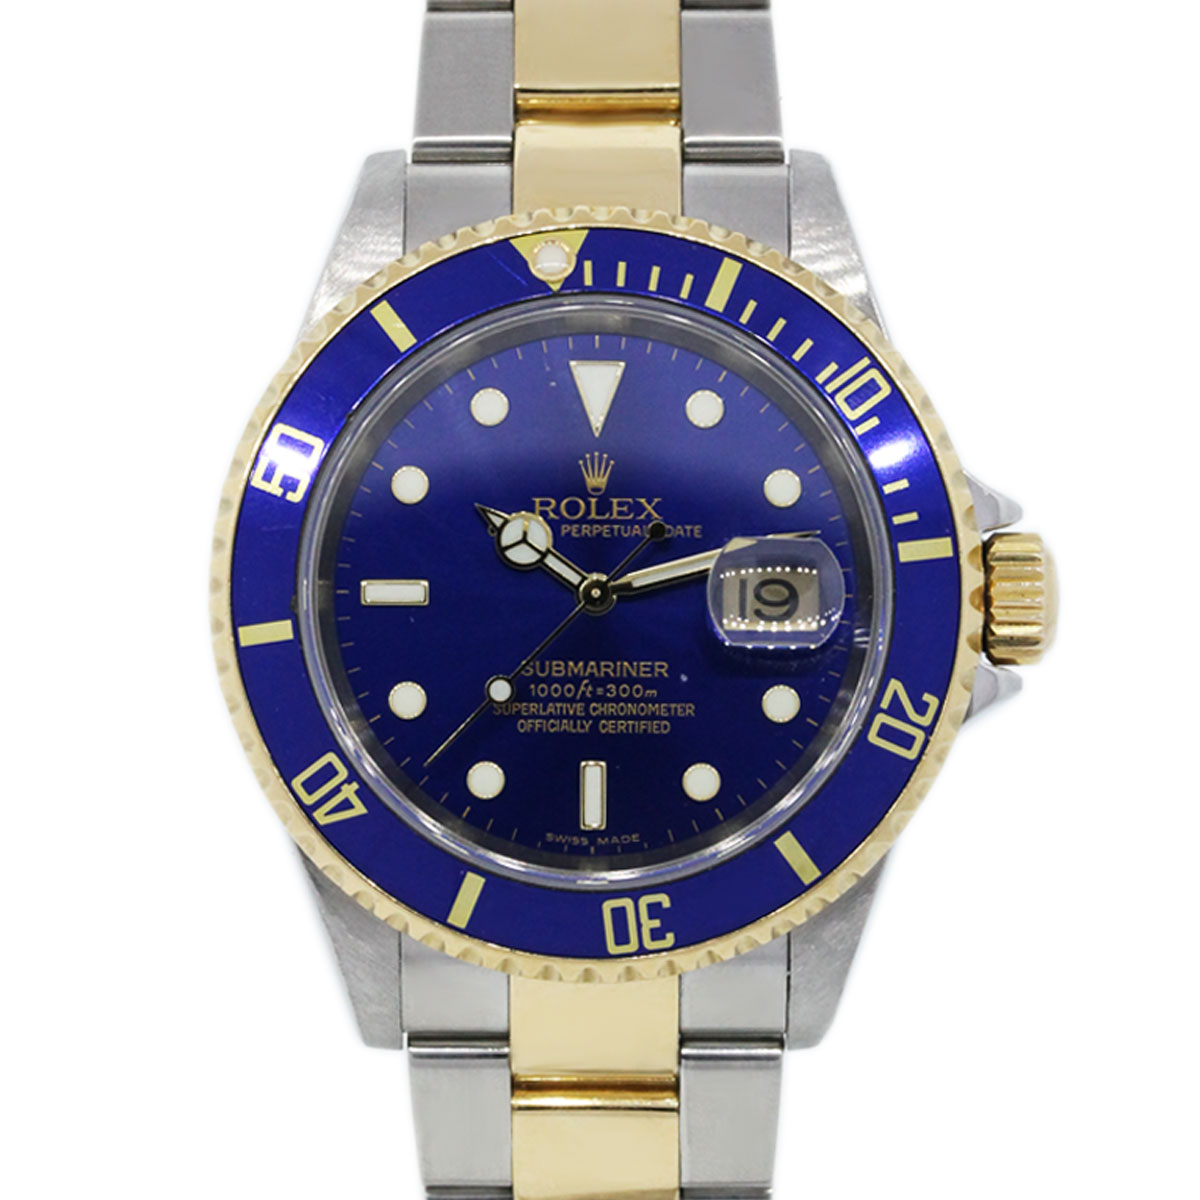 Rolex submariner 16613 two tone blue dial mens watch boca raton for Submariner rolex blue